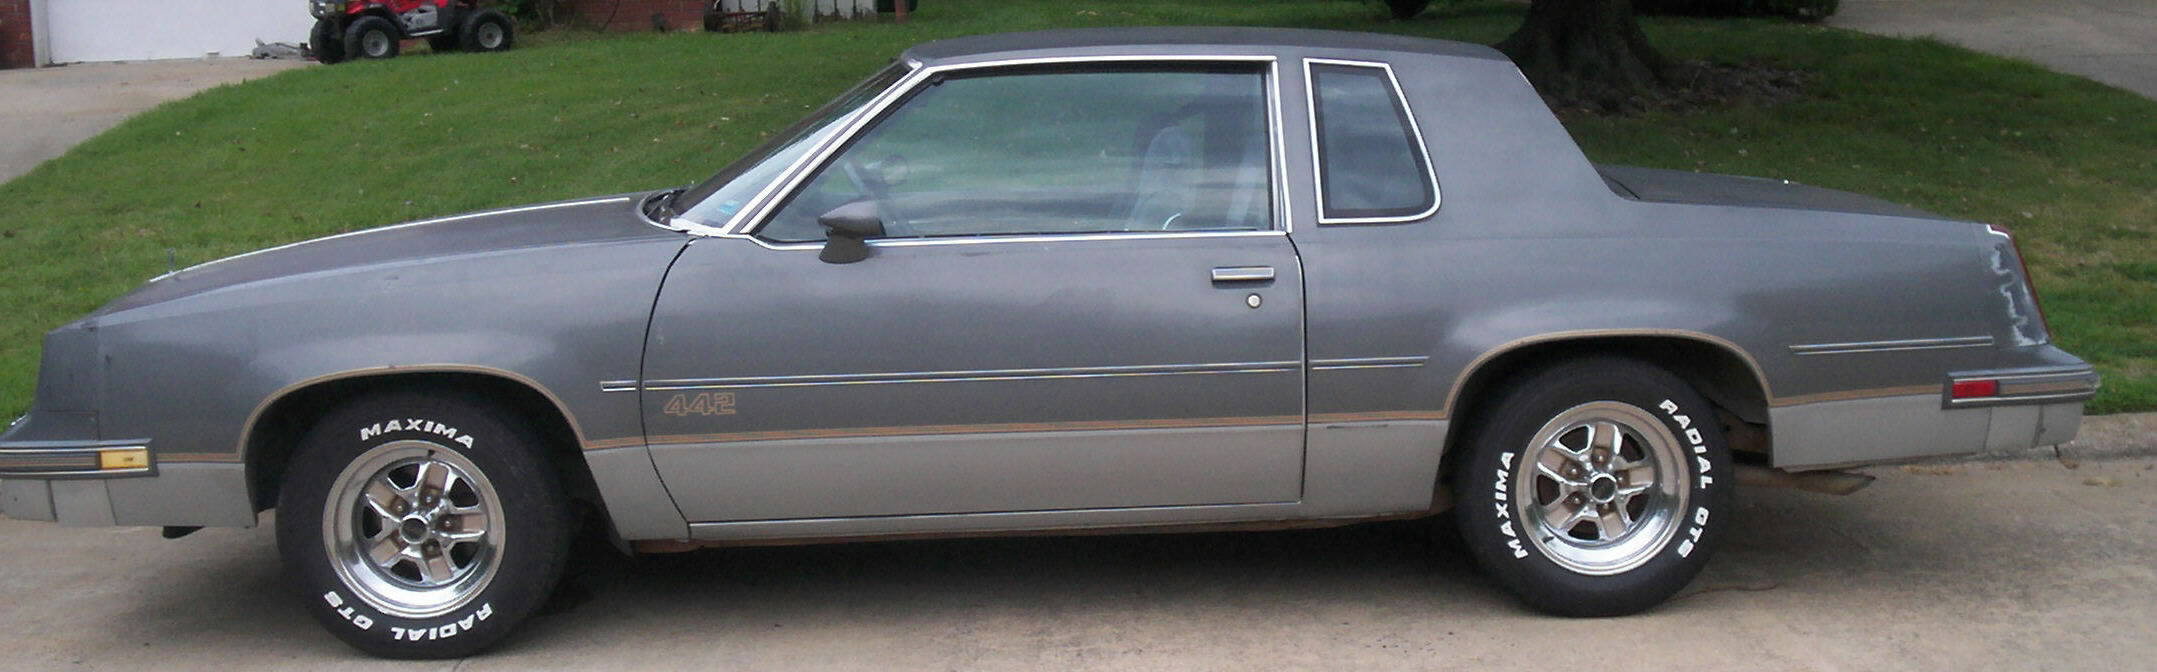 1985 Olds 442, SOLD!, two-tone